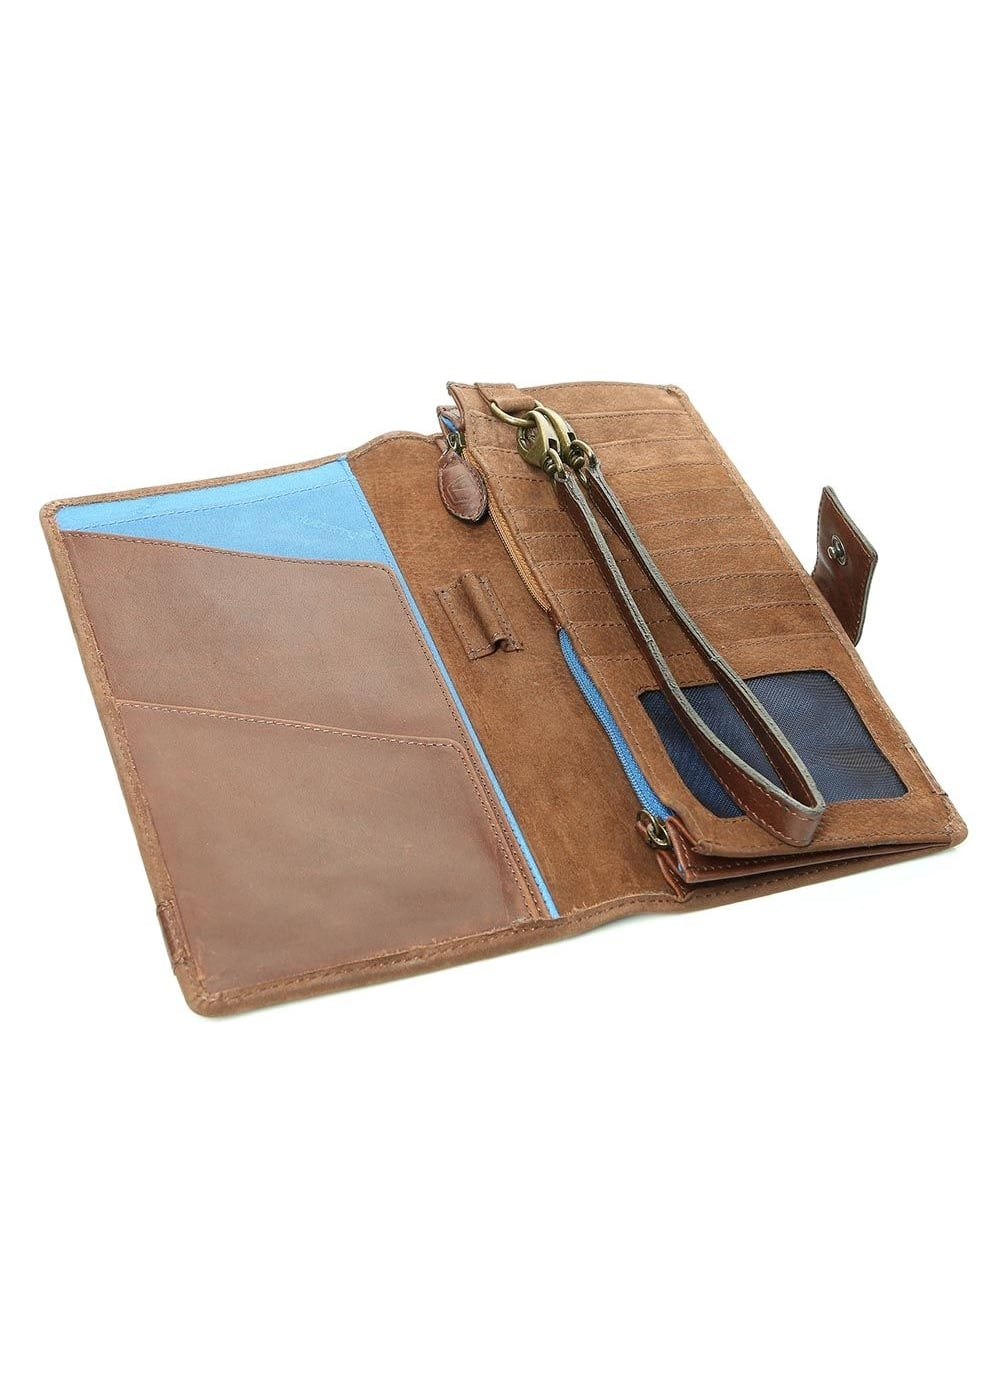 Dubarry Milltown Travel Organiser  Large Image